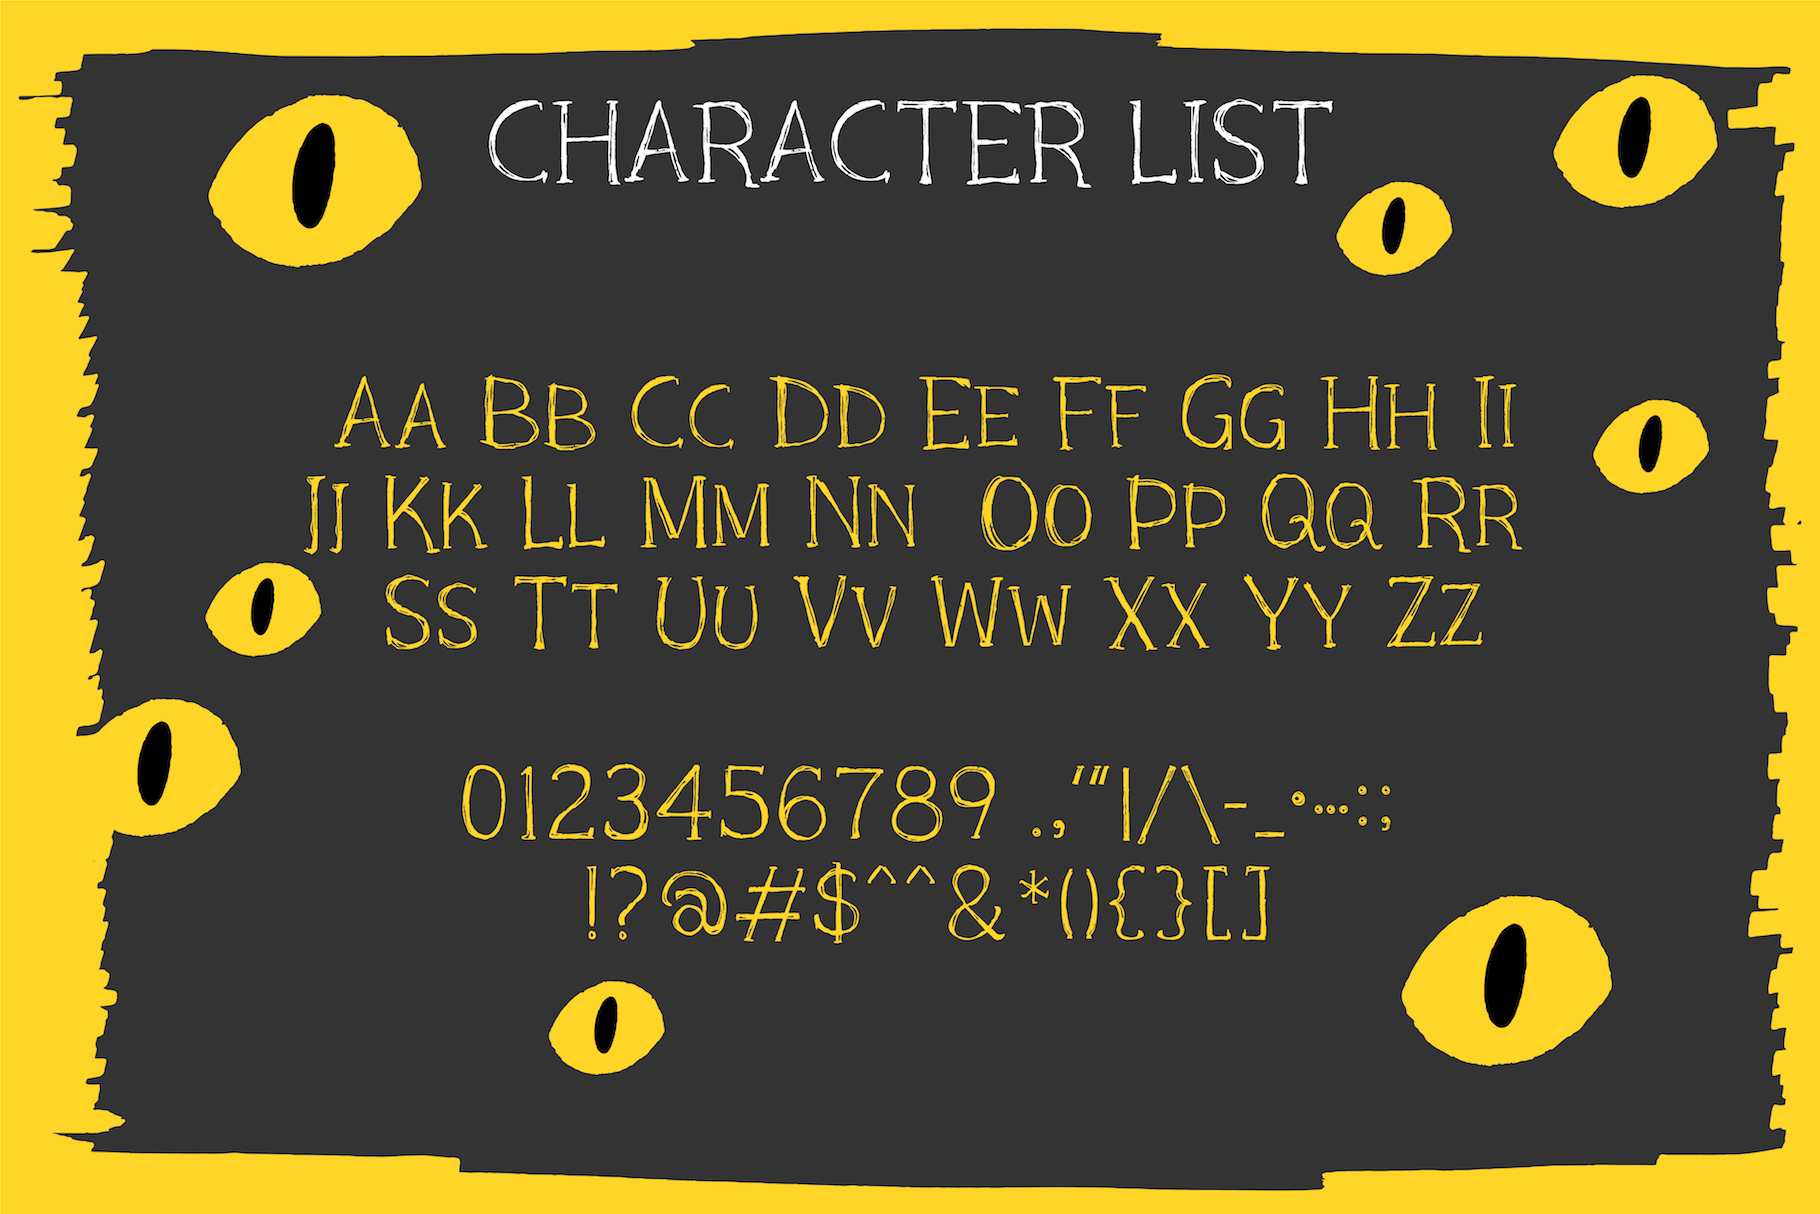 Black Cat Whiskers - Mini Serif Font example image 7